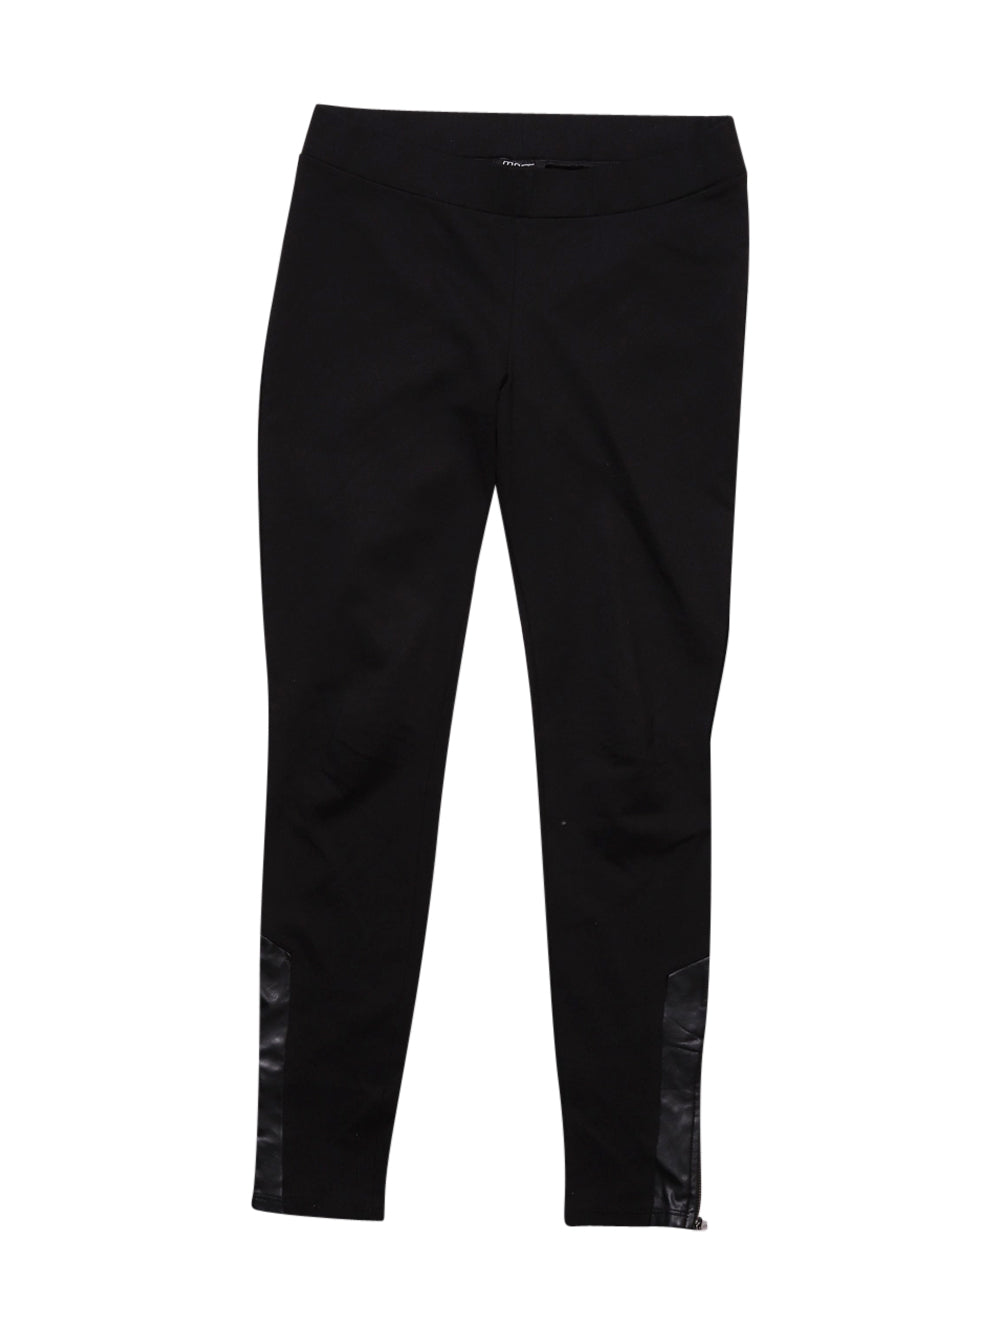 Front photo of Preloved Motivi Black Woman's sport trousers - size 8/S